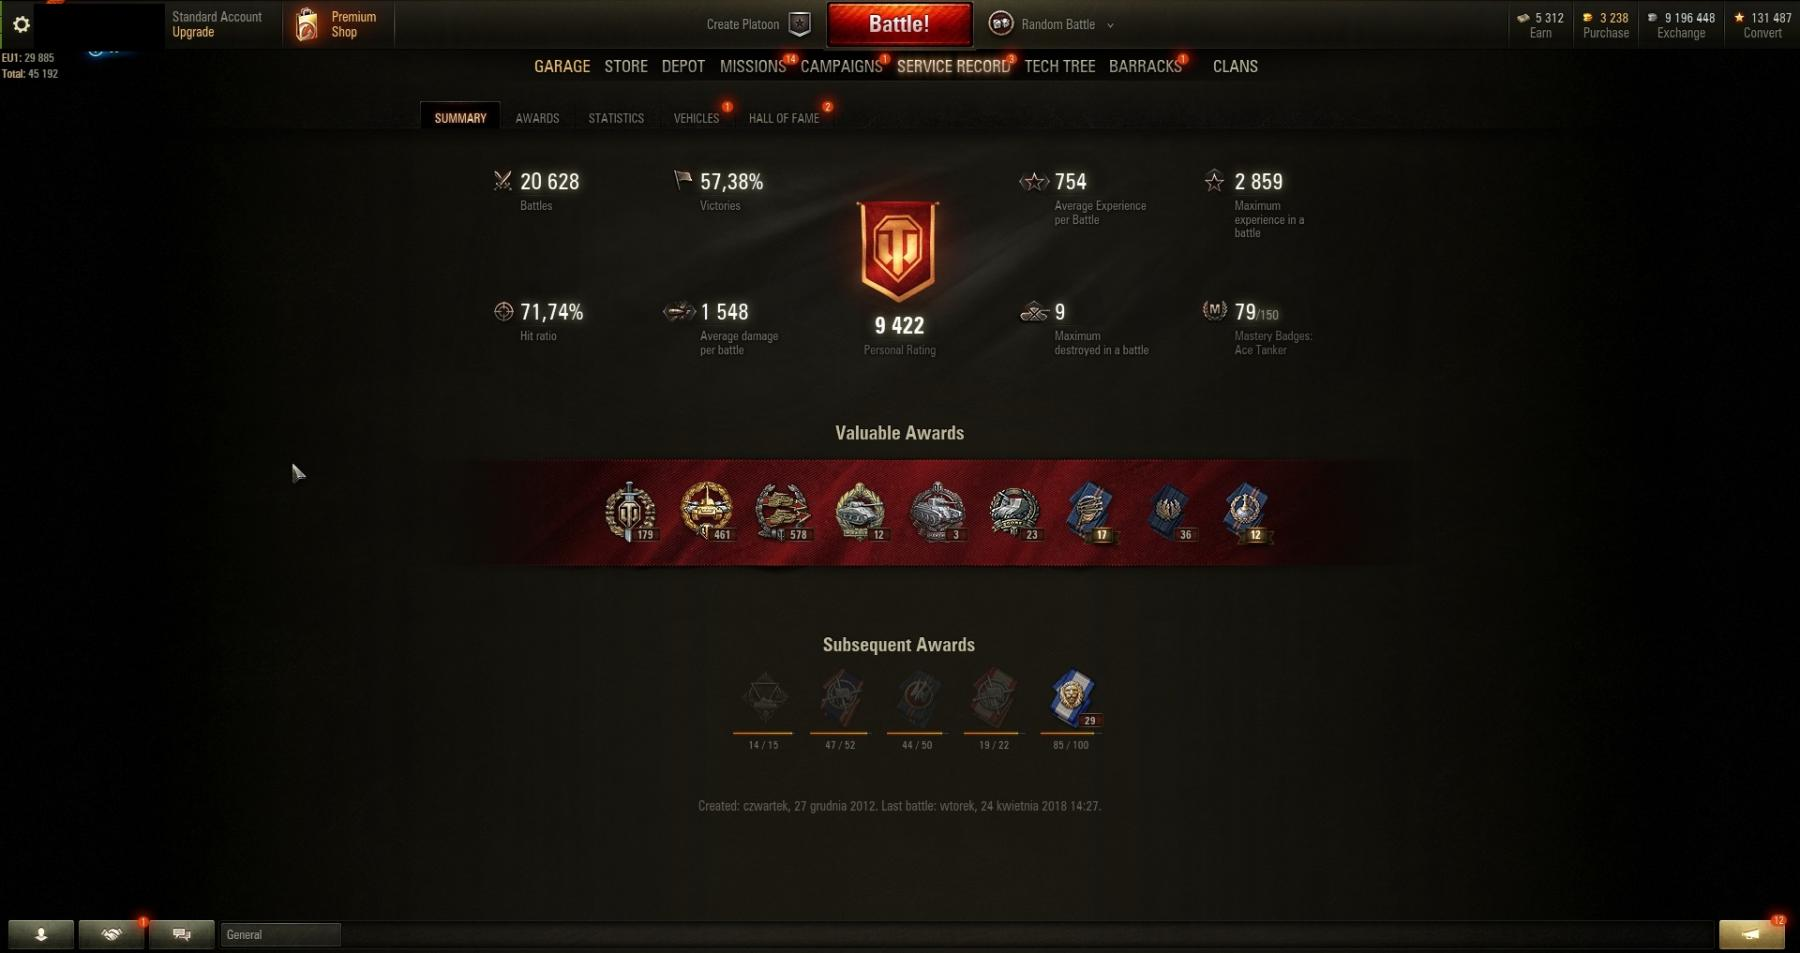 WN8: 2411,84! Personal Rating:9422! Victories:57,38%! 57 TANKS: VK 72.01 (K), Object 907! Clan Battle Account!